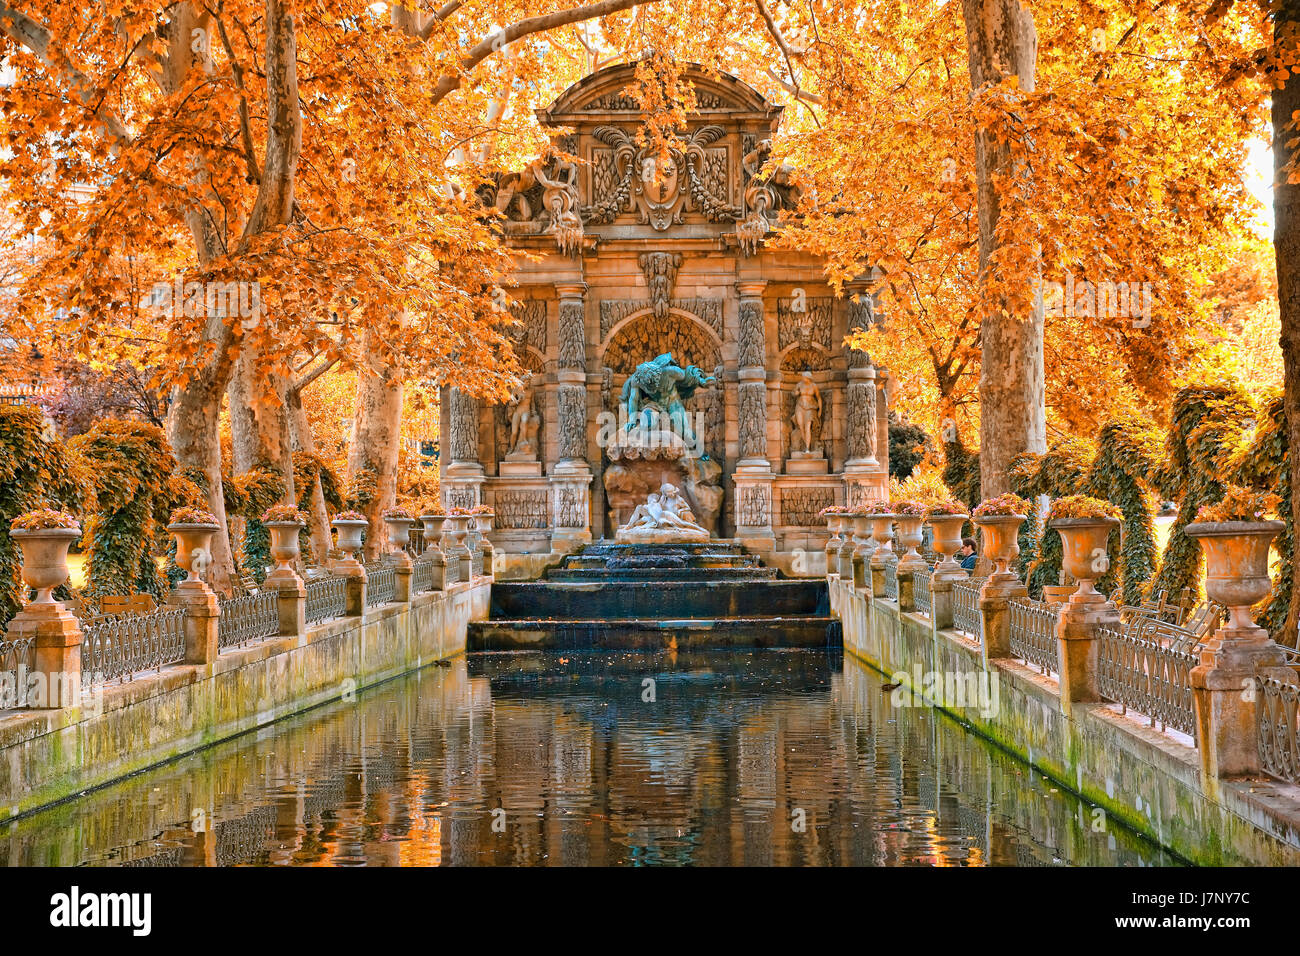 Image De Fontaine De Jardin fontaine medicis in jardin du luxembourg in paris stock